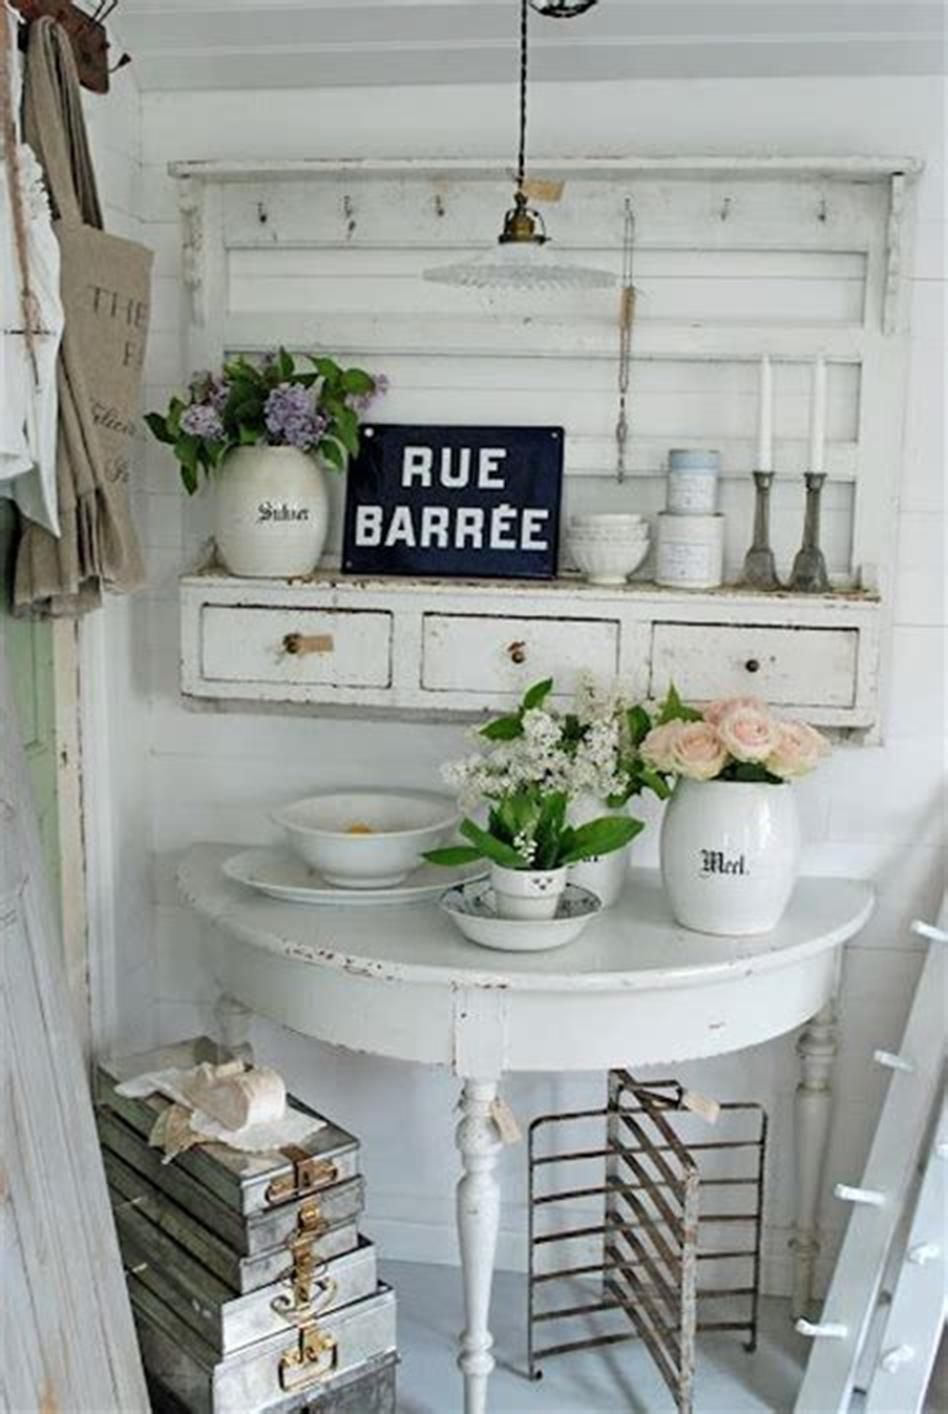 Amazing Chic Country Decorating Homecoach Ideas Kitchen Shabby Shabby Chic Kitchen Decoration 40 Amazin In 2020 Shabby Chic Kuche Vibeke Design Landhaus Mobel